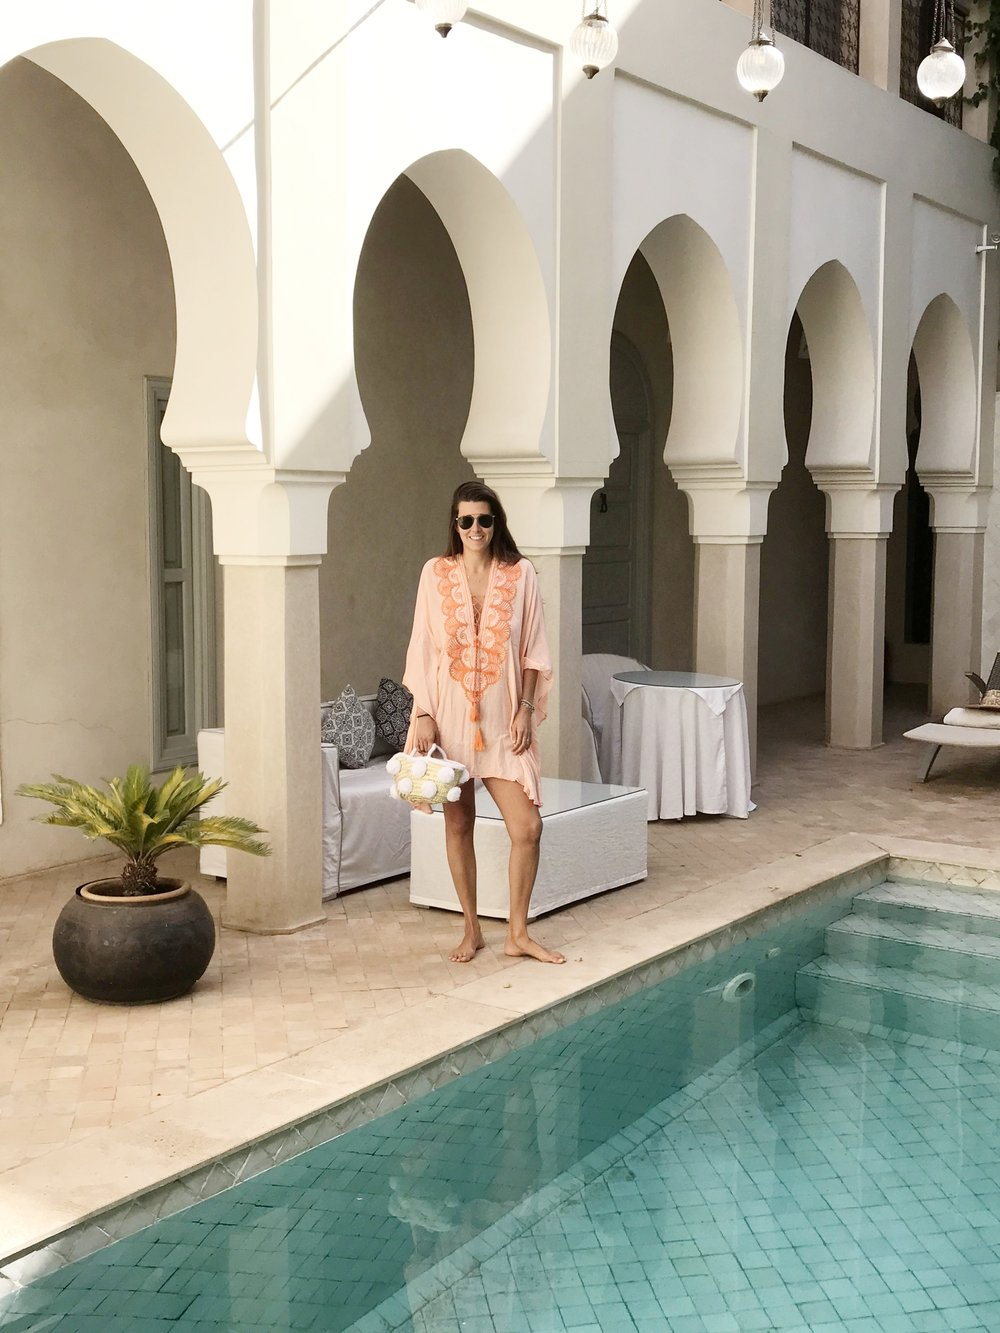 #NotAModel - But, when in such a beautiful place, with a new collection of Caftans- you do what you gotta' do!